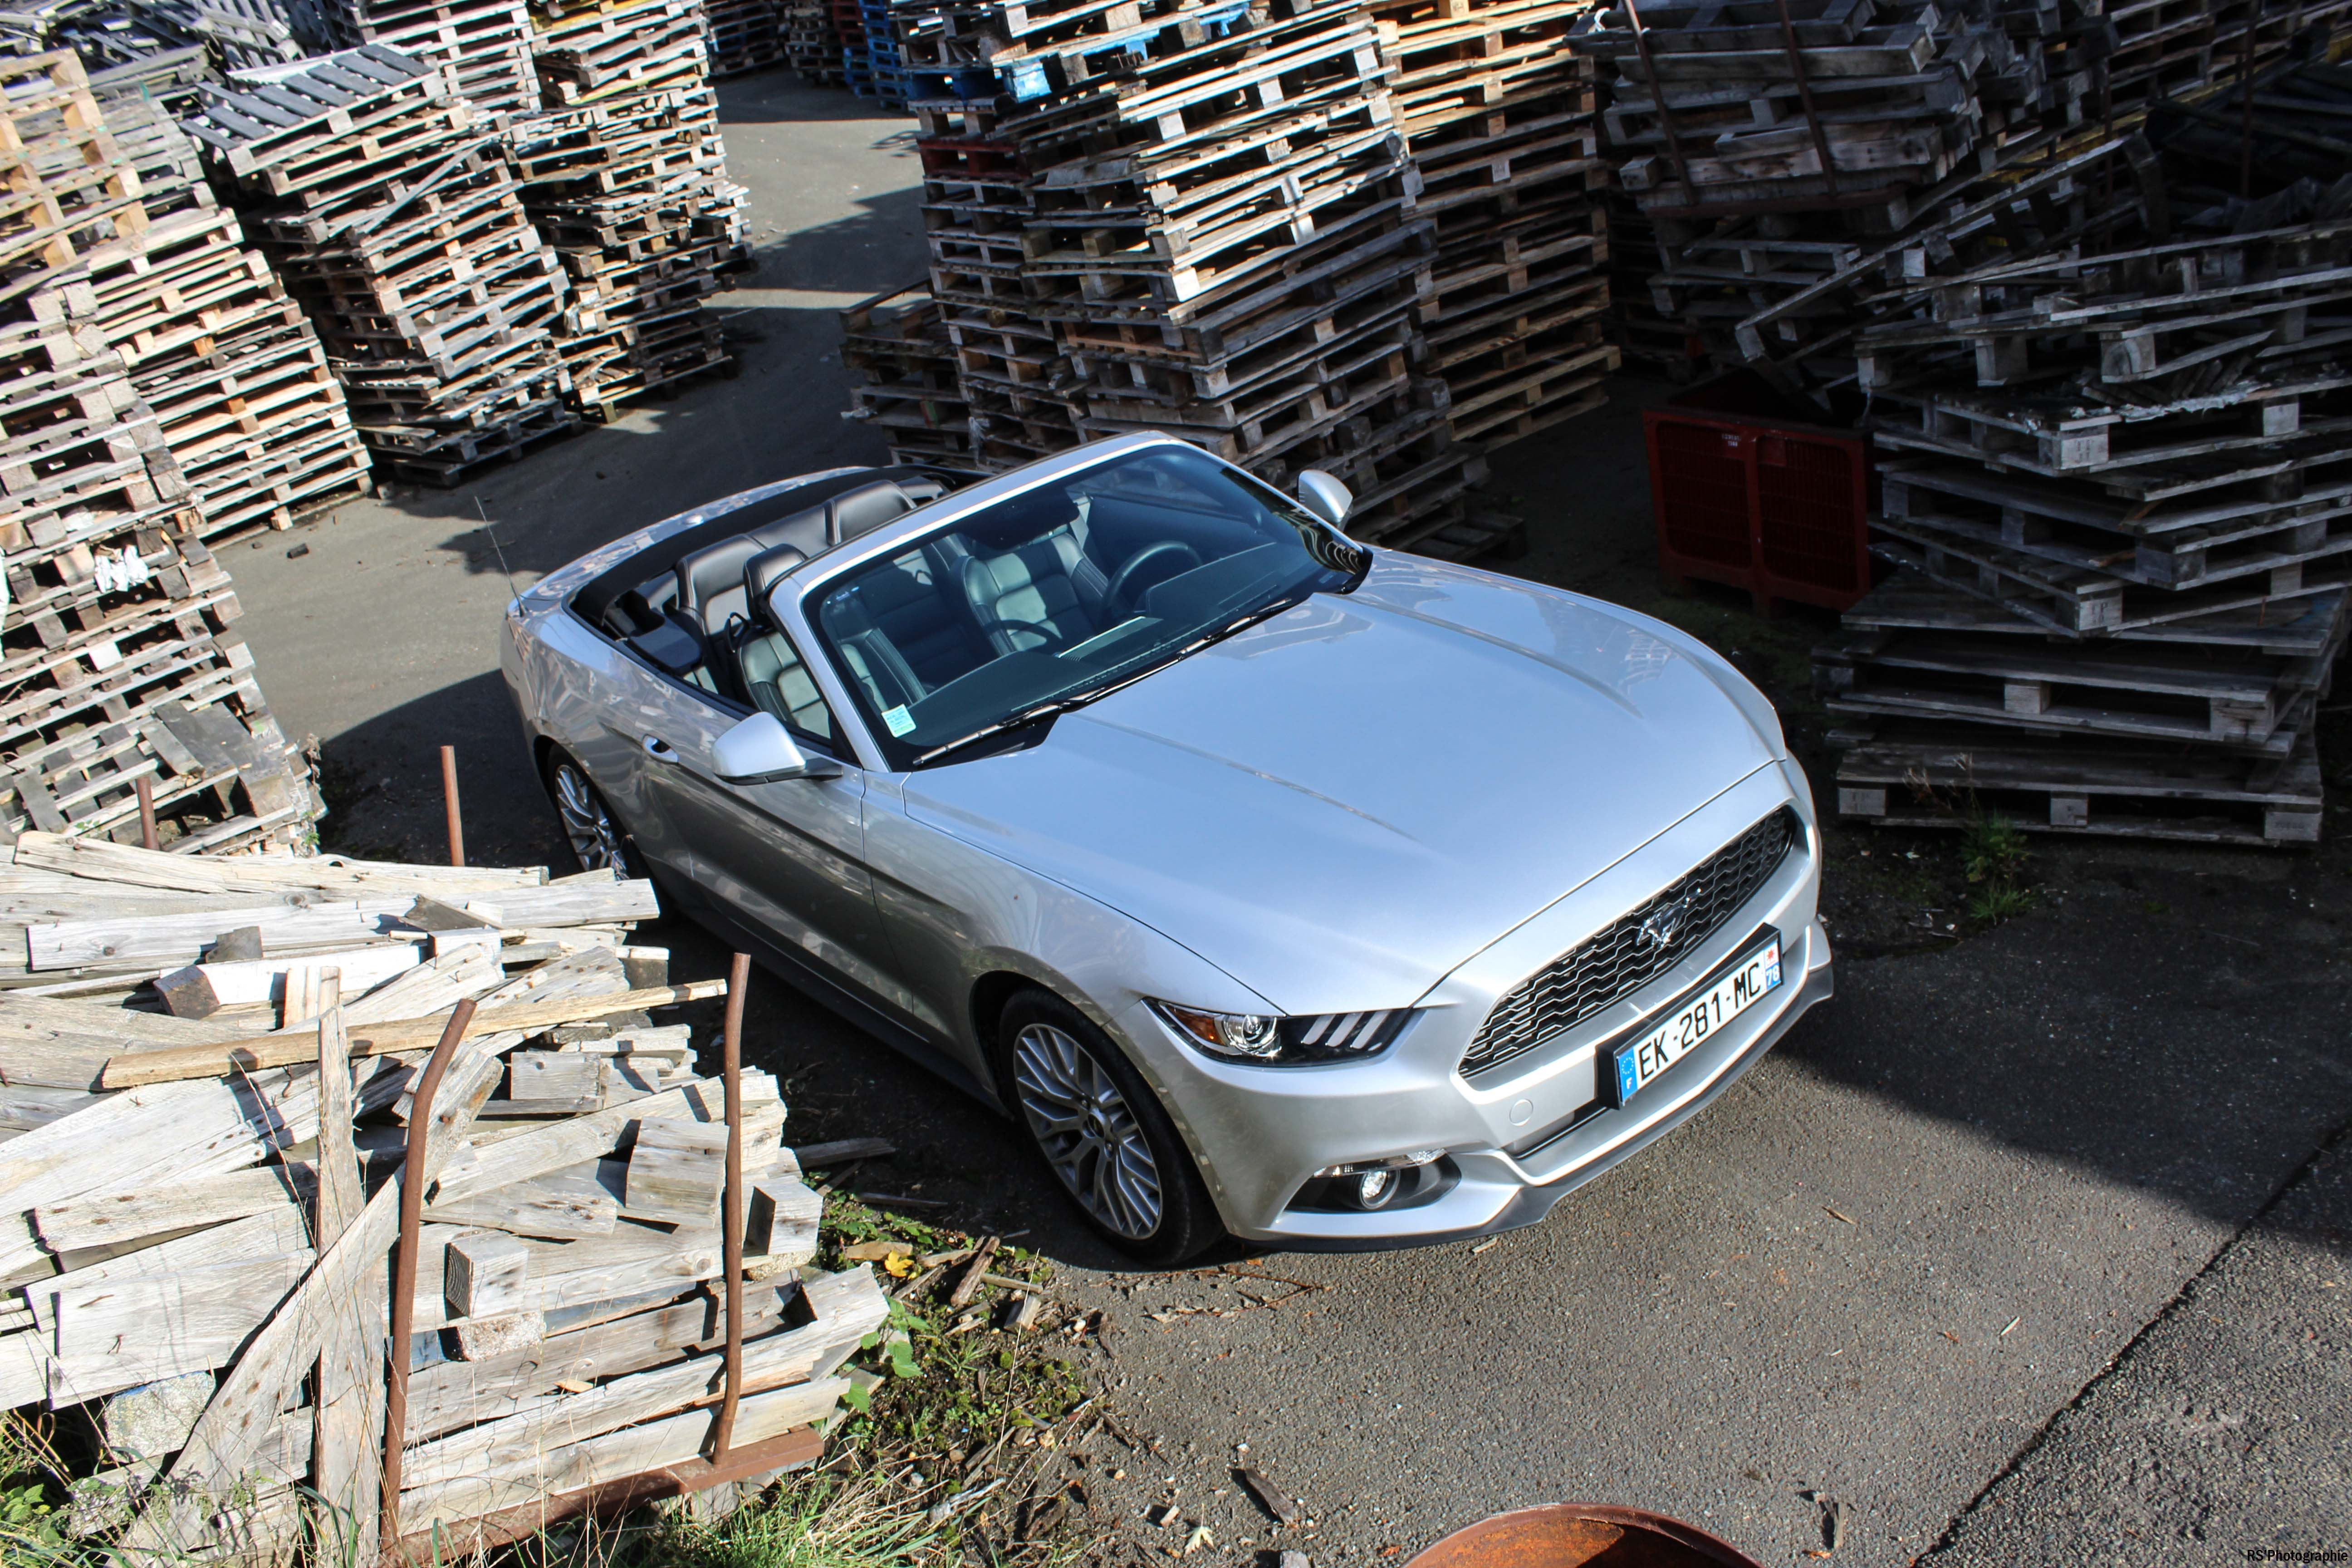 fordmustangeconvertible39-ford-mustang-convertible-ecoboost-avant-front-Arnaud Demasier-RSPhotographie